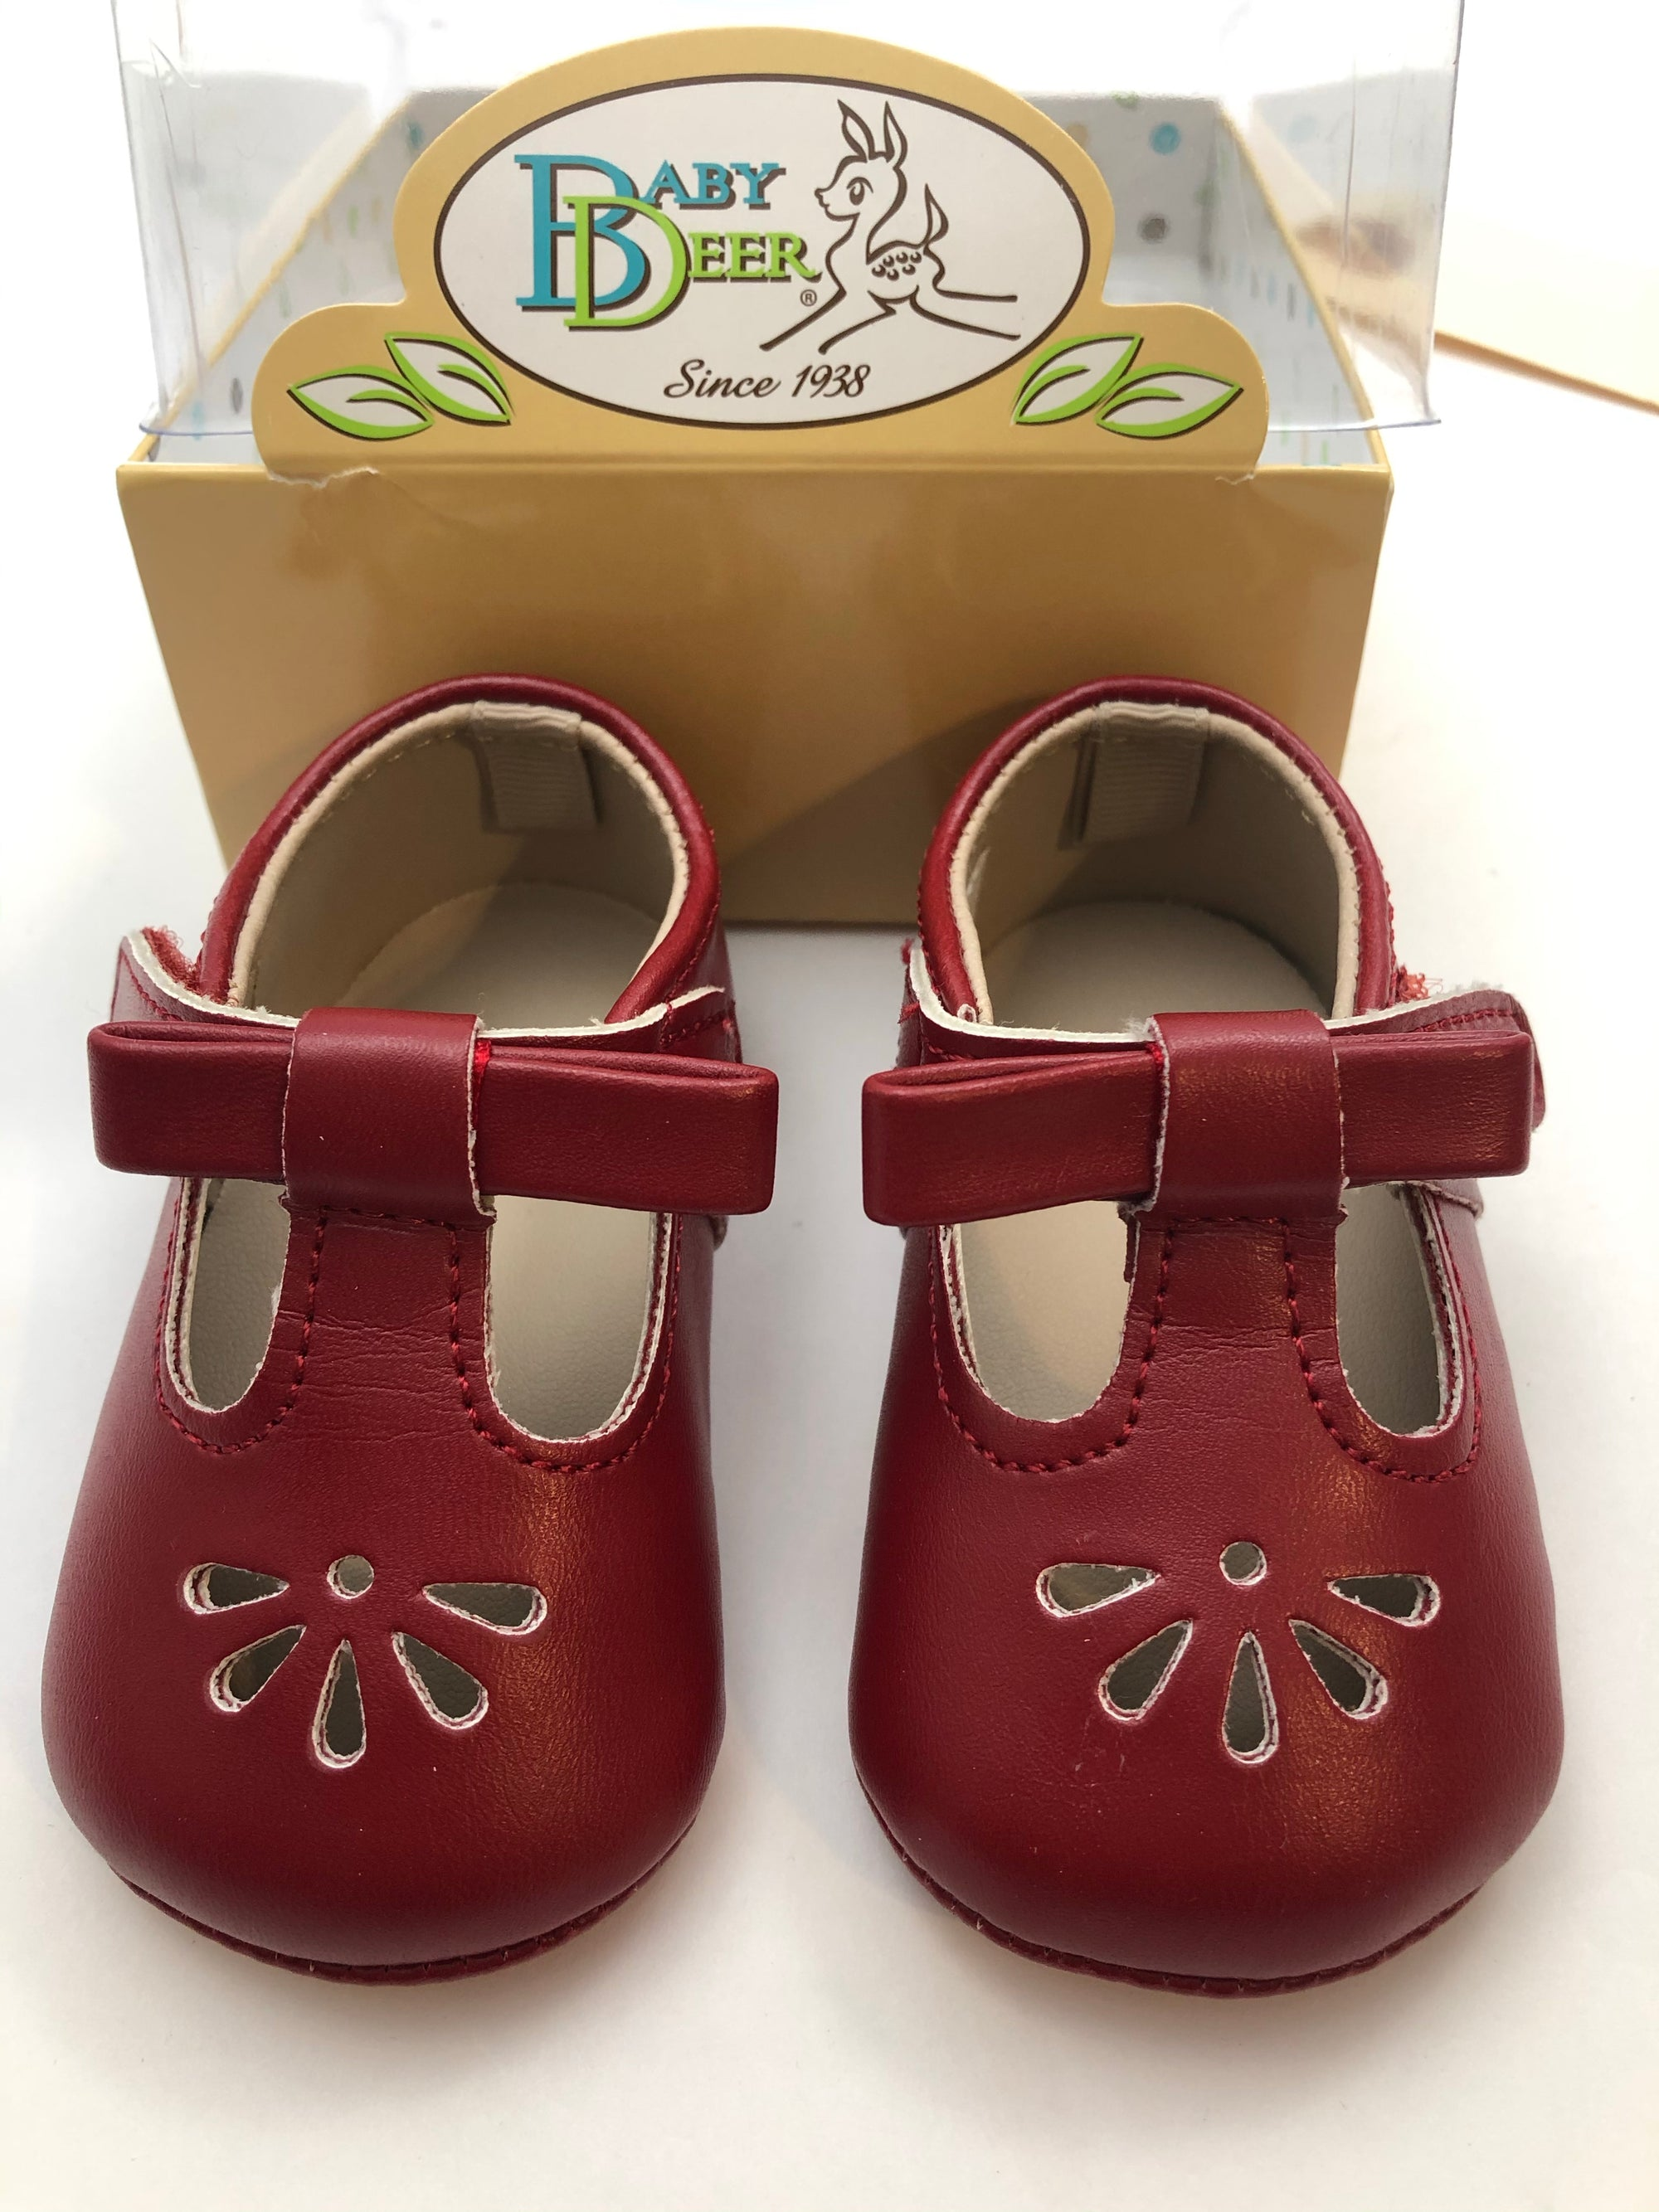 Resale C1 Baby Deer Red Mary Jane Shoes